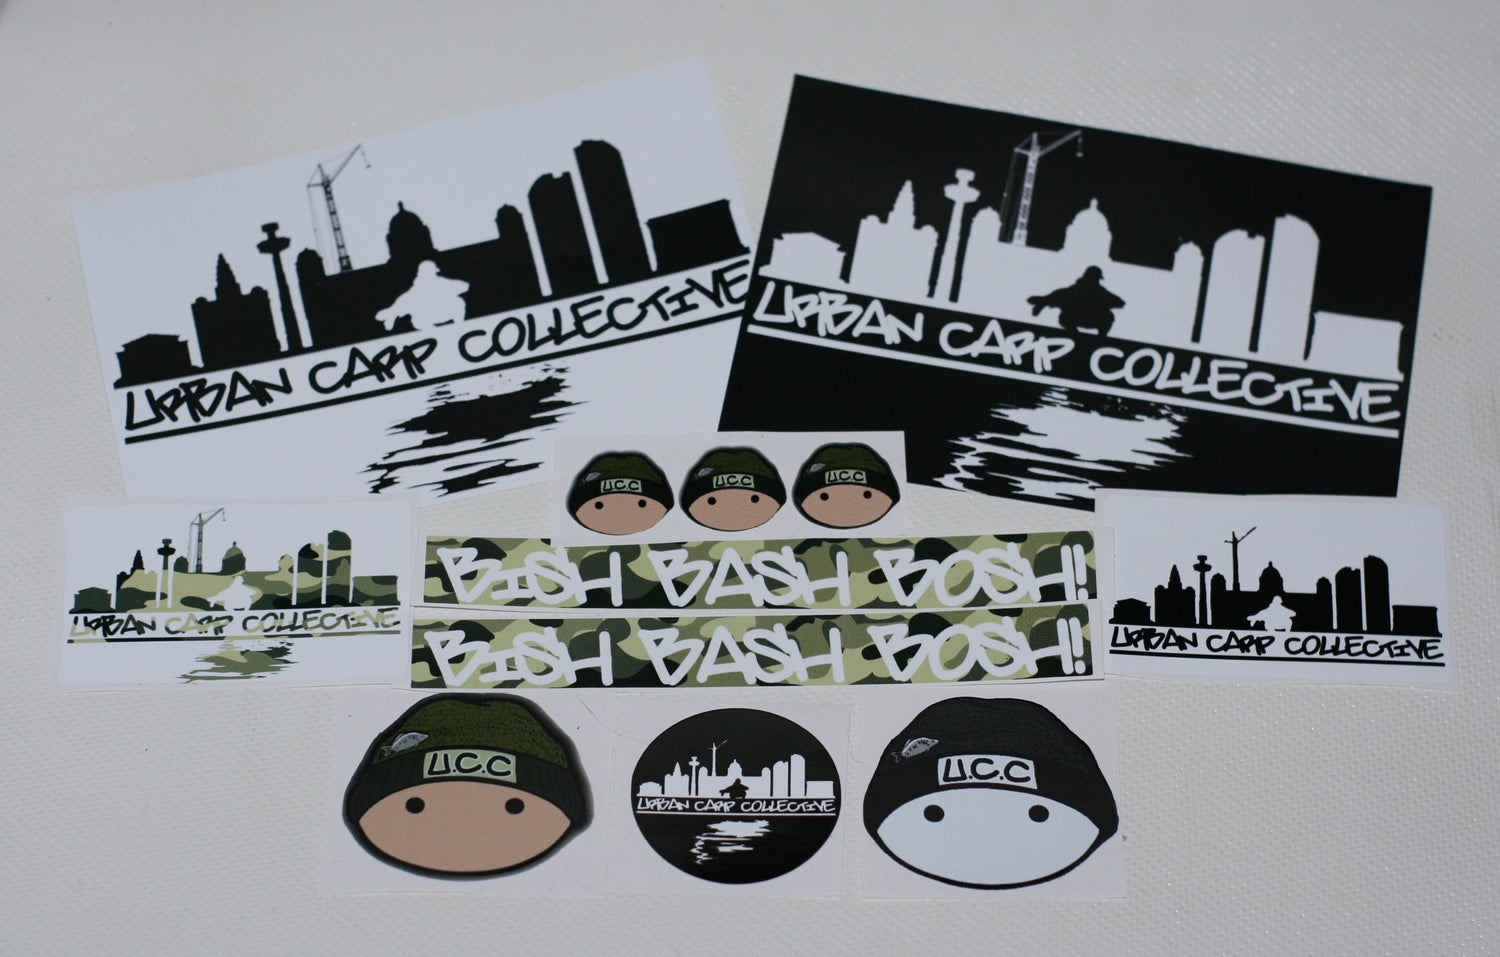 Image of Full Urban Carp Collective Sticker Set